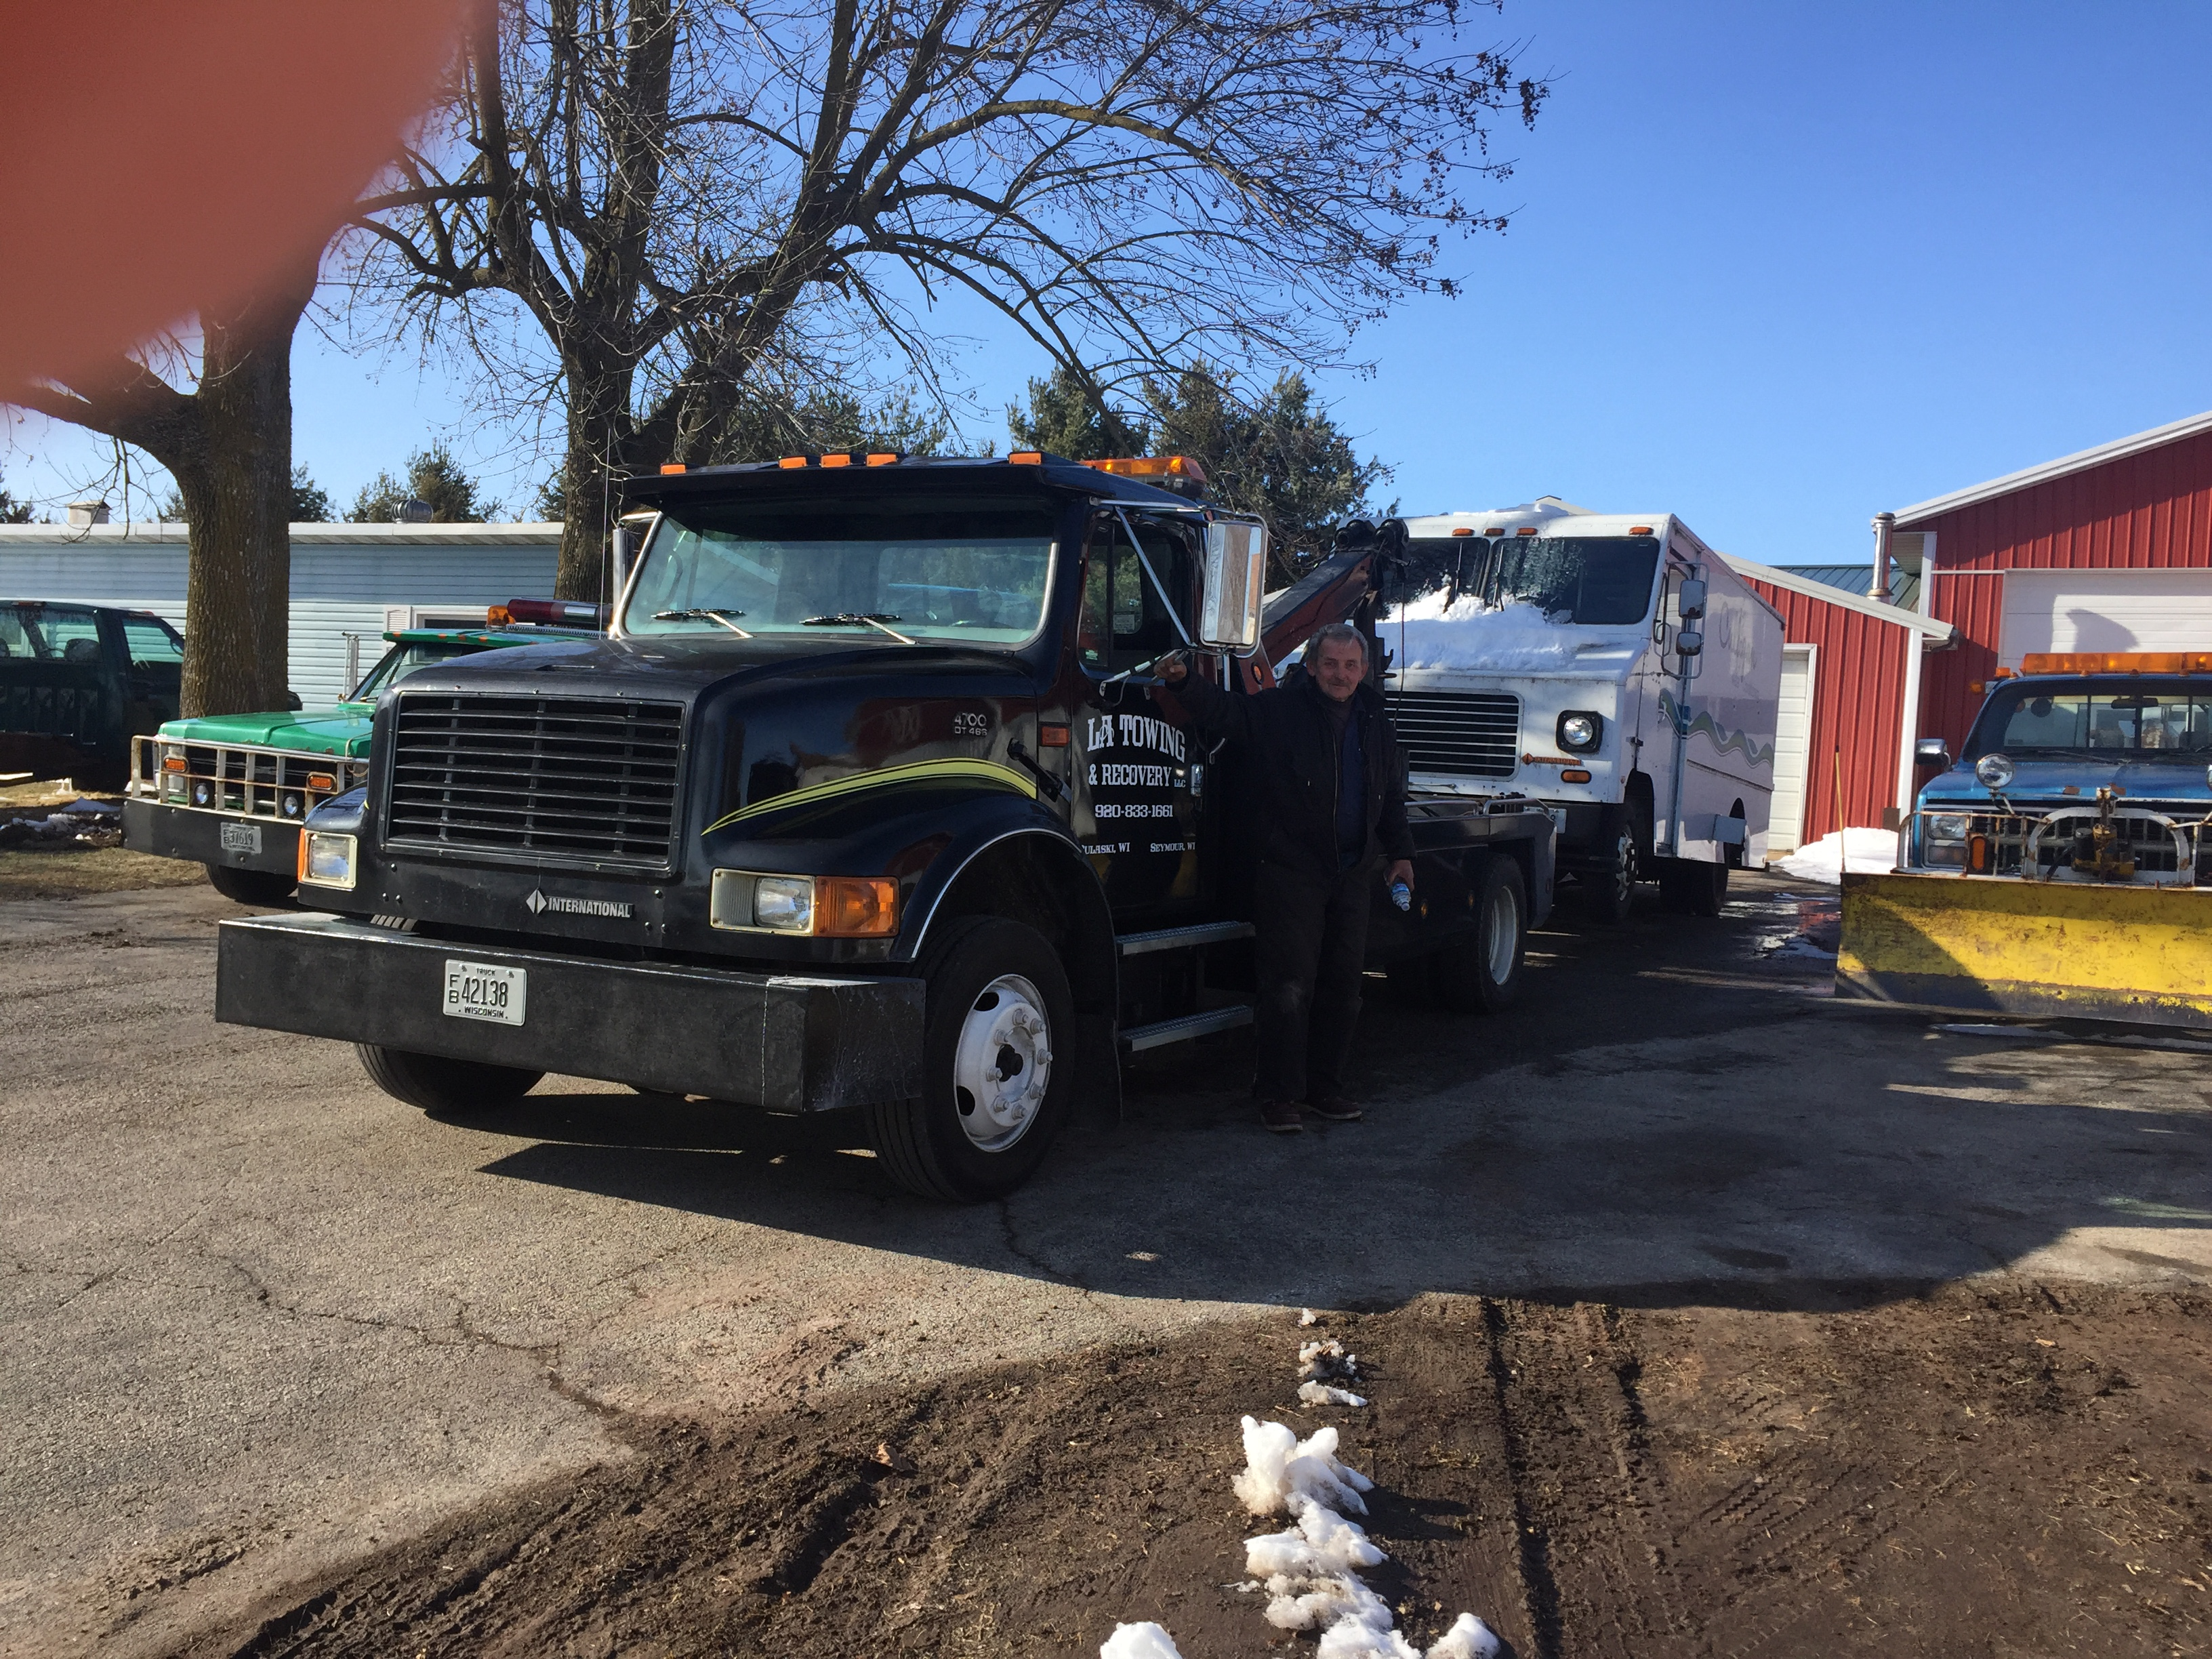 LA Towing & Recovery, LLC image 24